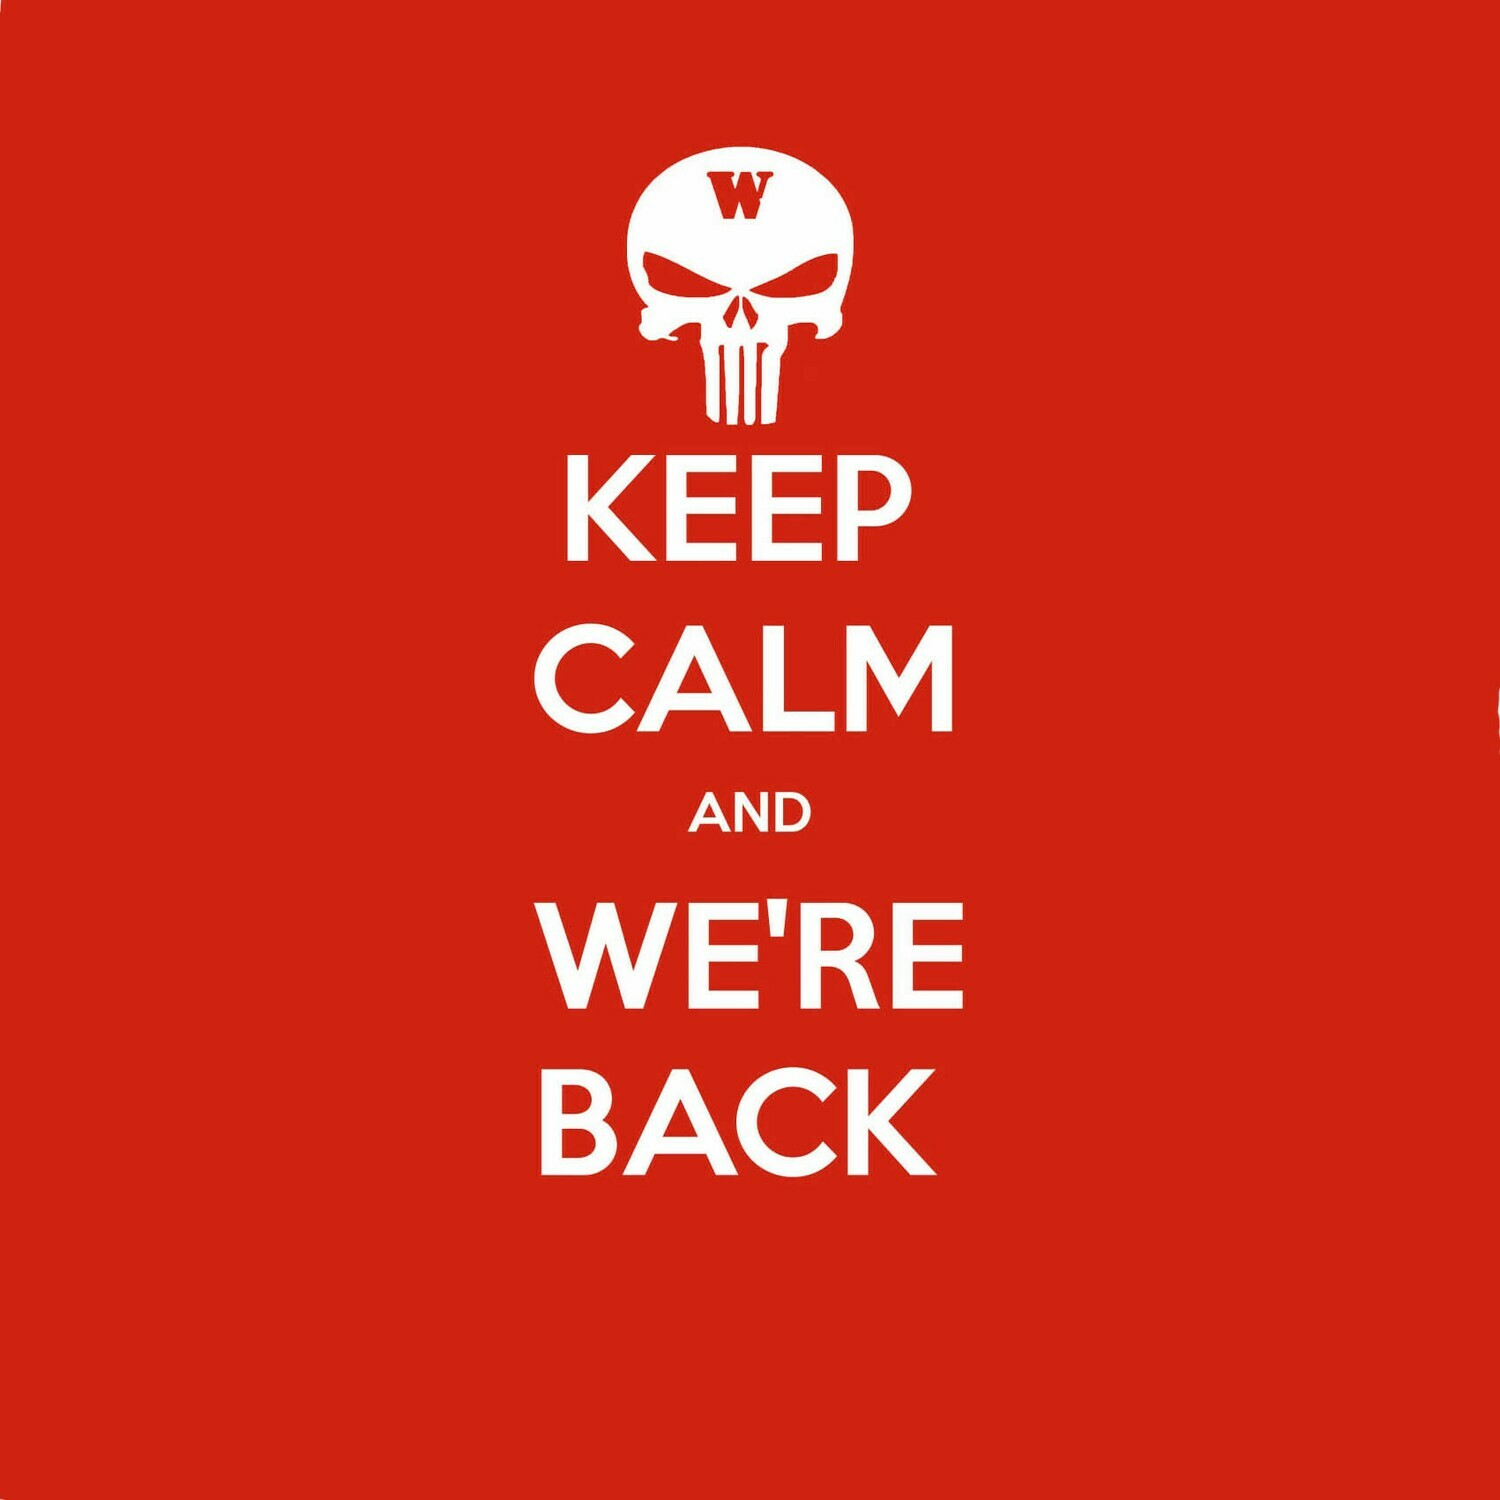 Keep CALM And We are Back  - New shop working hours Lockdown Level 1